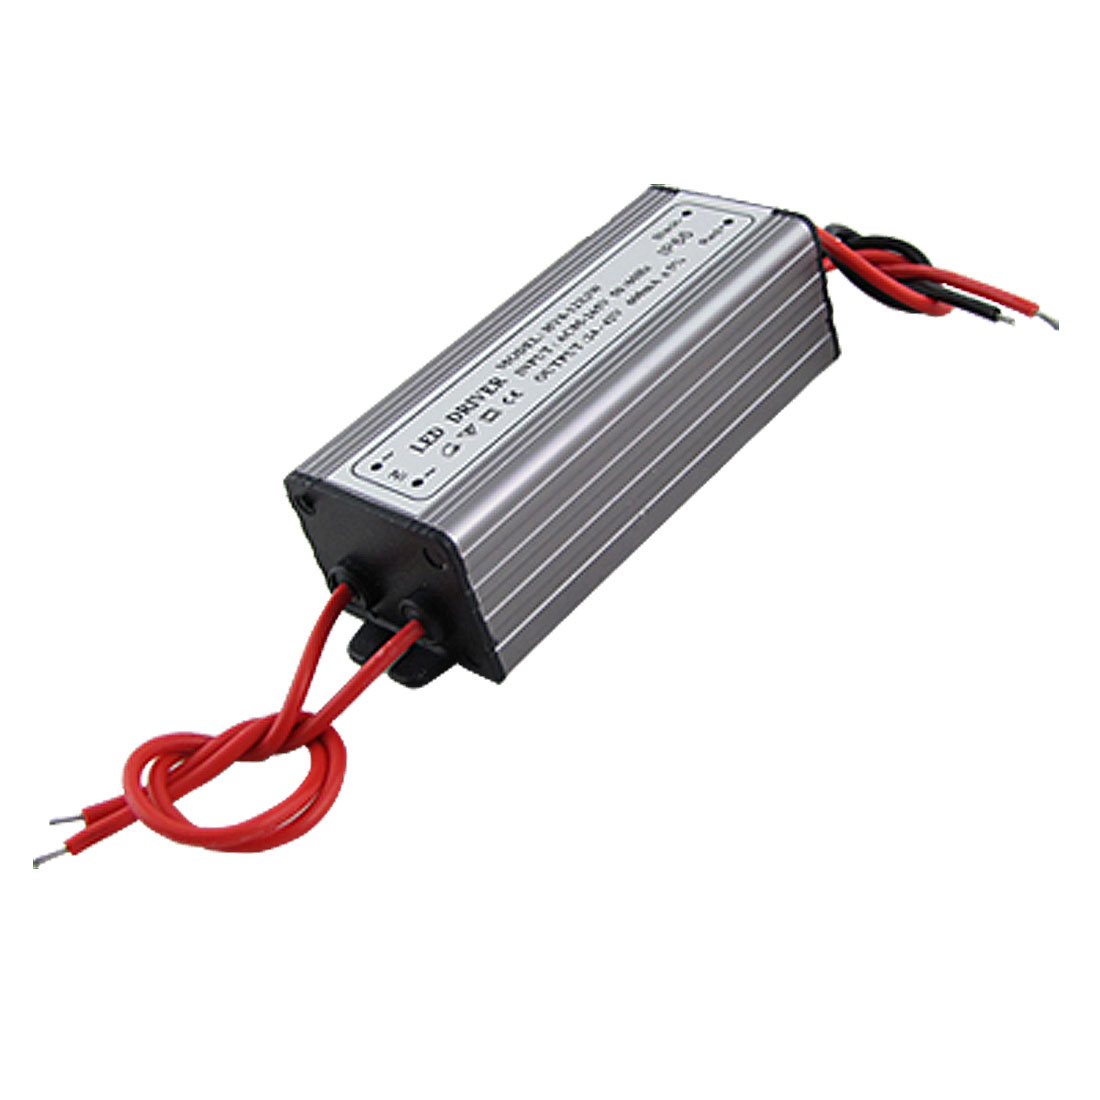 AC 110-220V 24-42V 600mA 14.4-25.2W Driver Power Supply for LED Strip Light